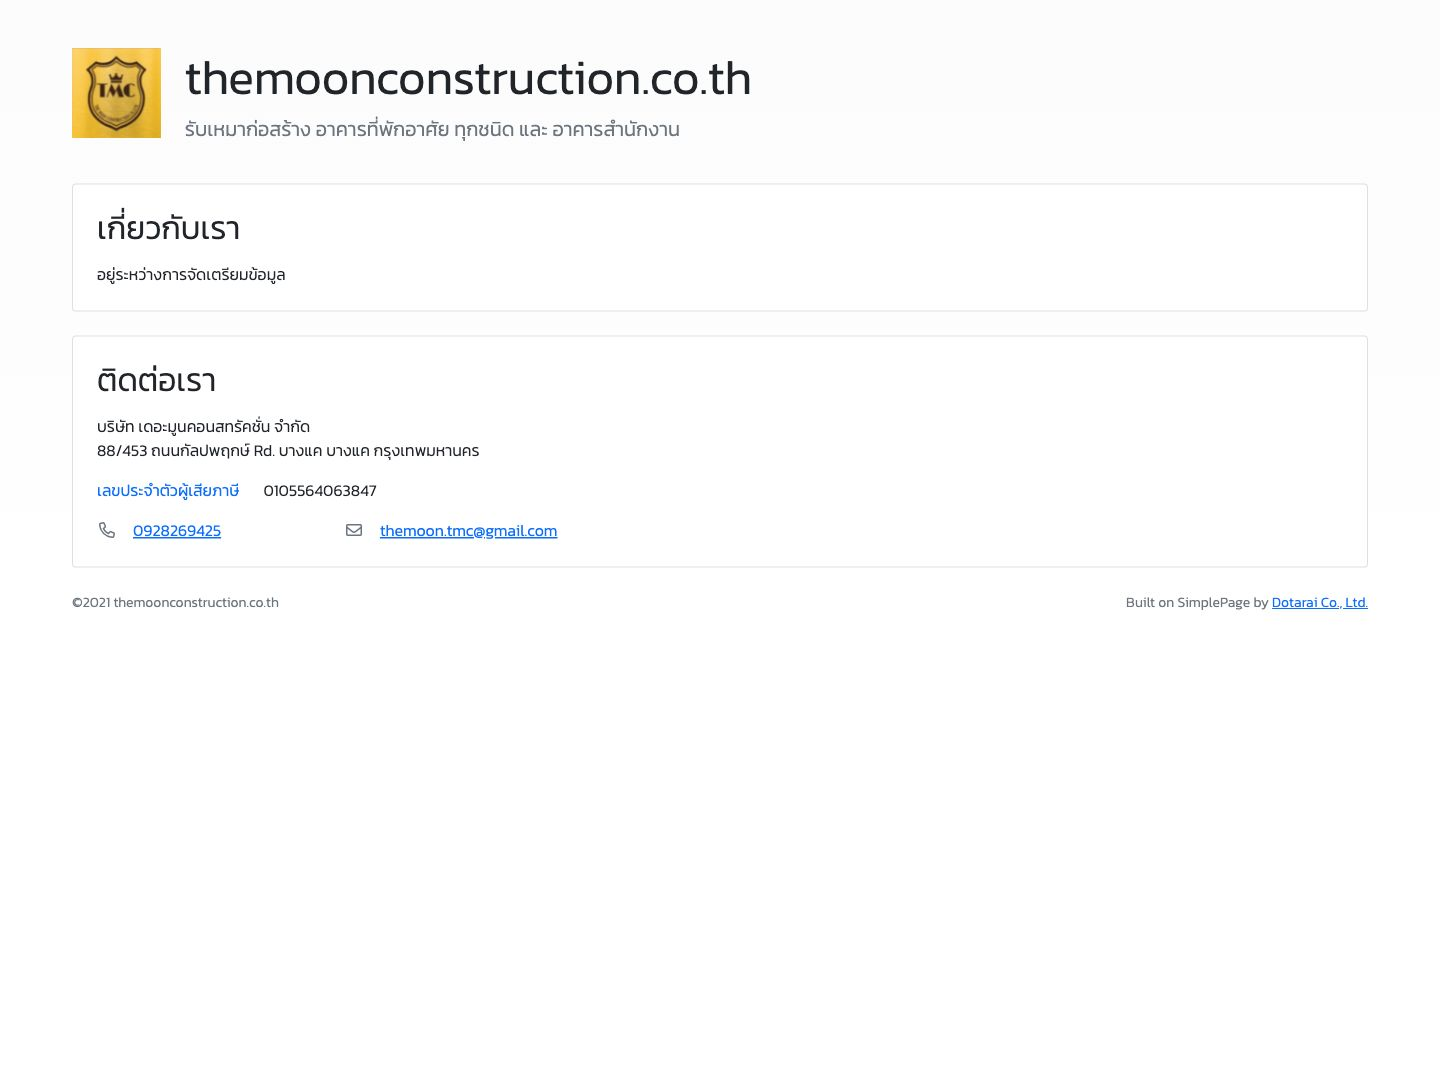 themoonconstruction.co.th